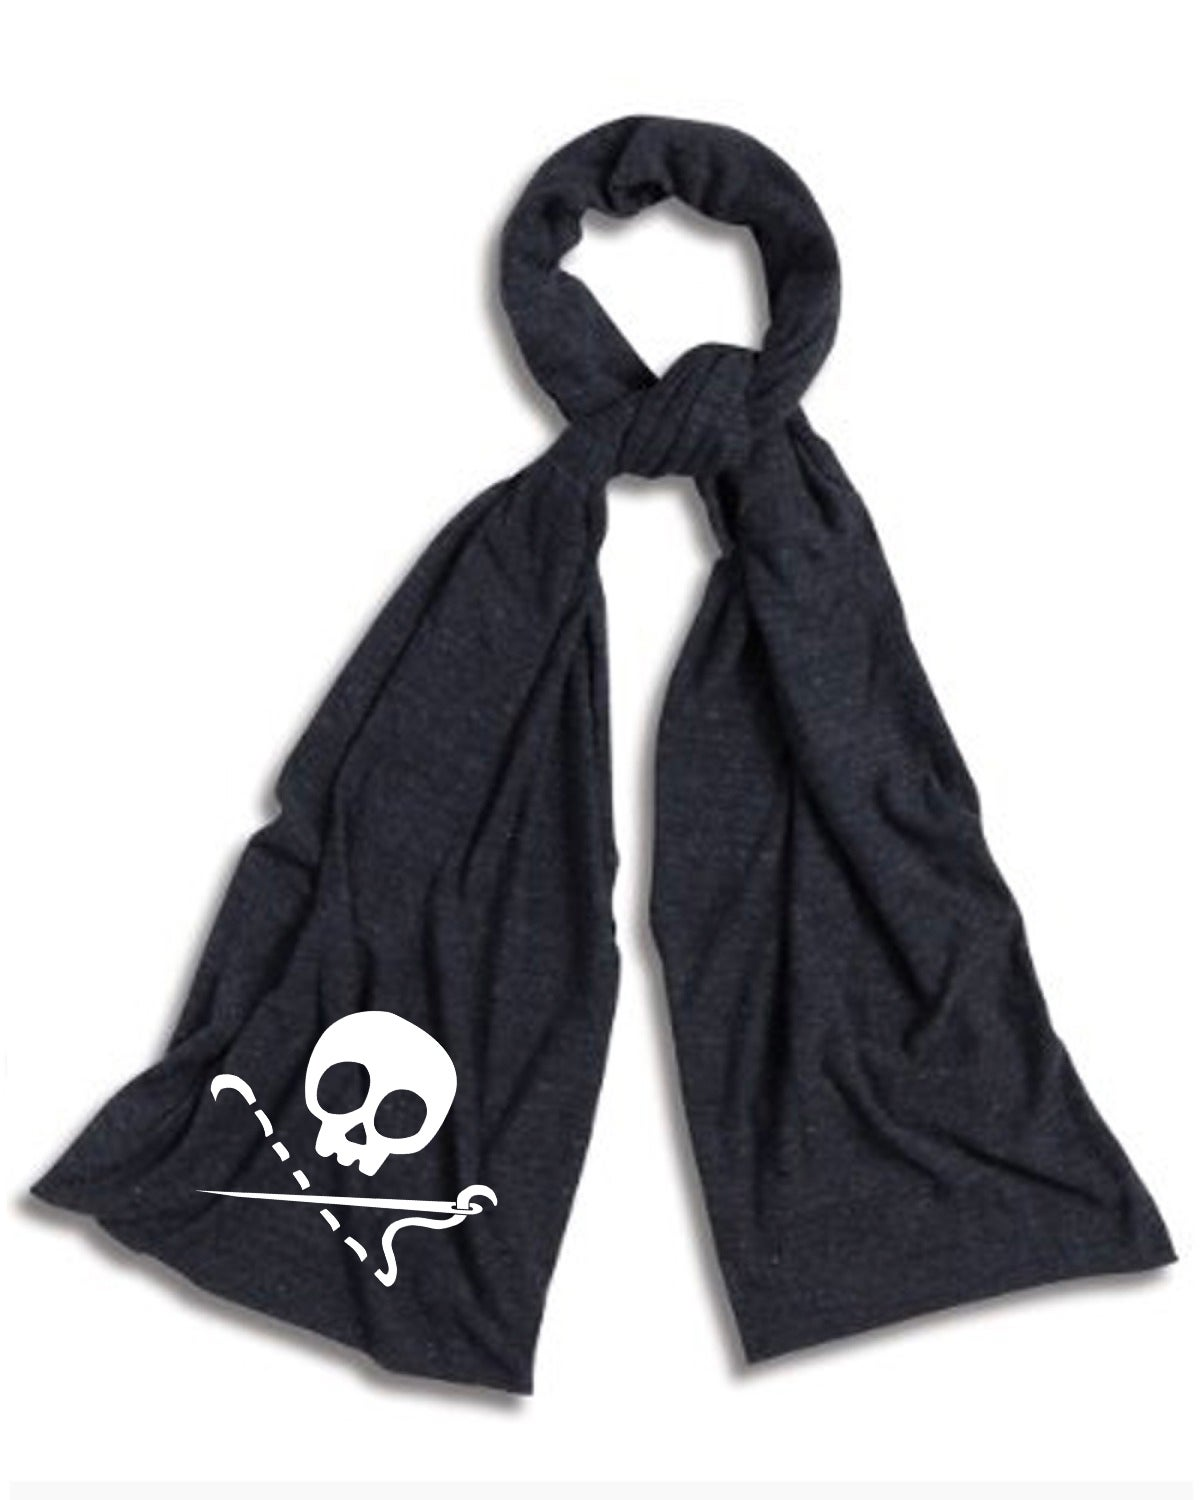 Image of PREORDER - Dark Grey Sewing Skull Scarf - Shipping July 15